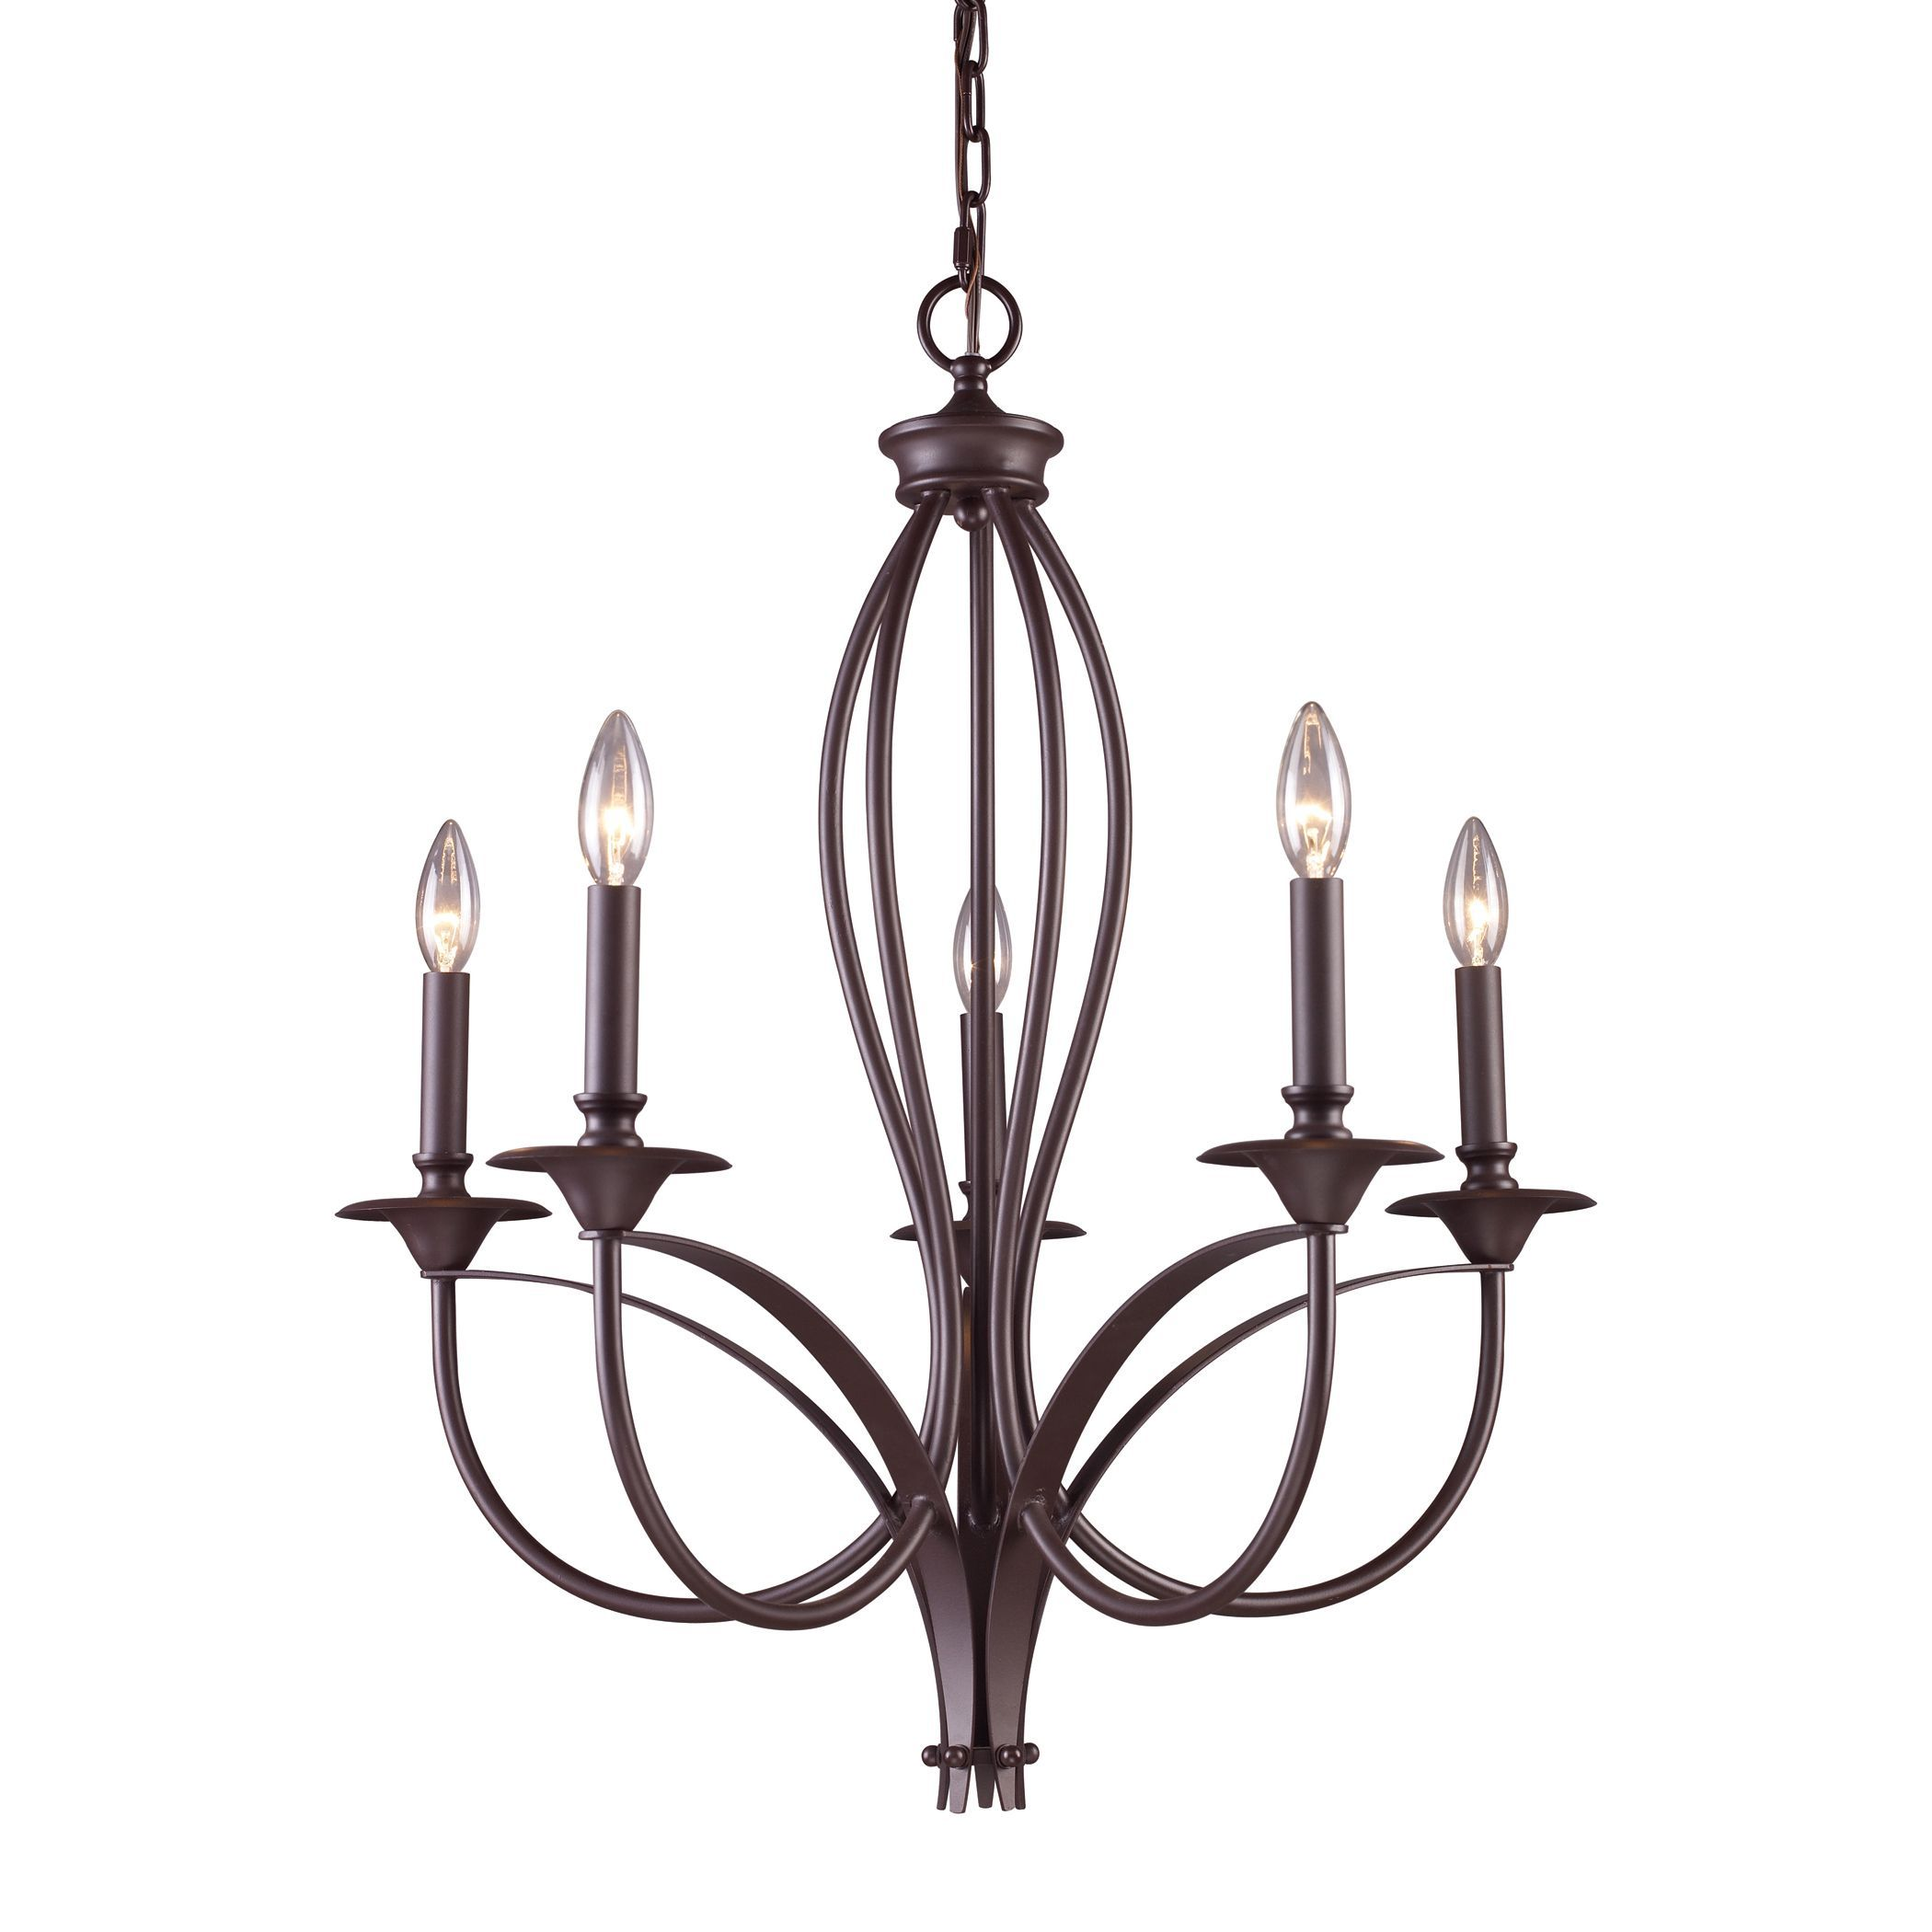 Simple elegance is what defines the Medford chandelier with it s